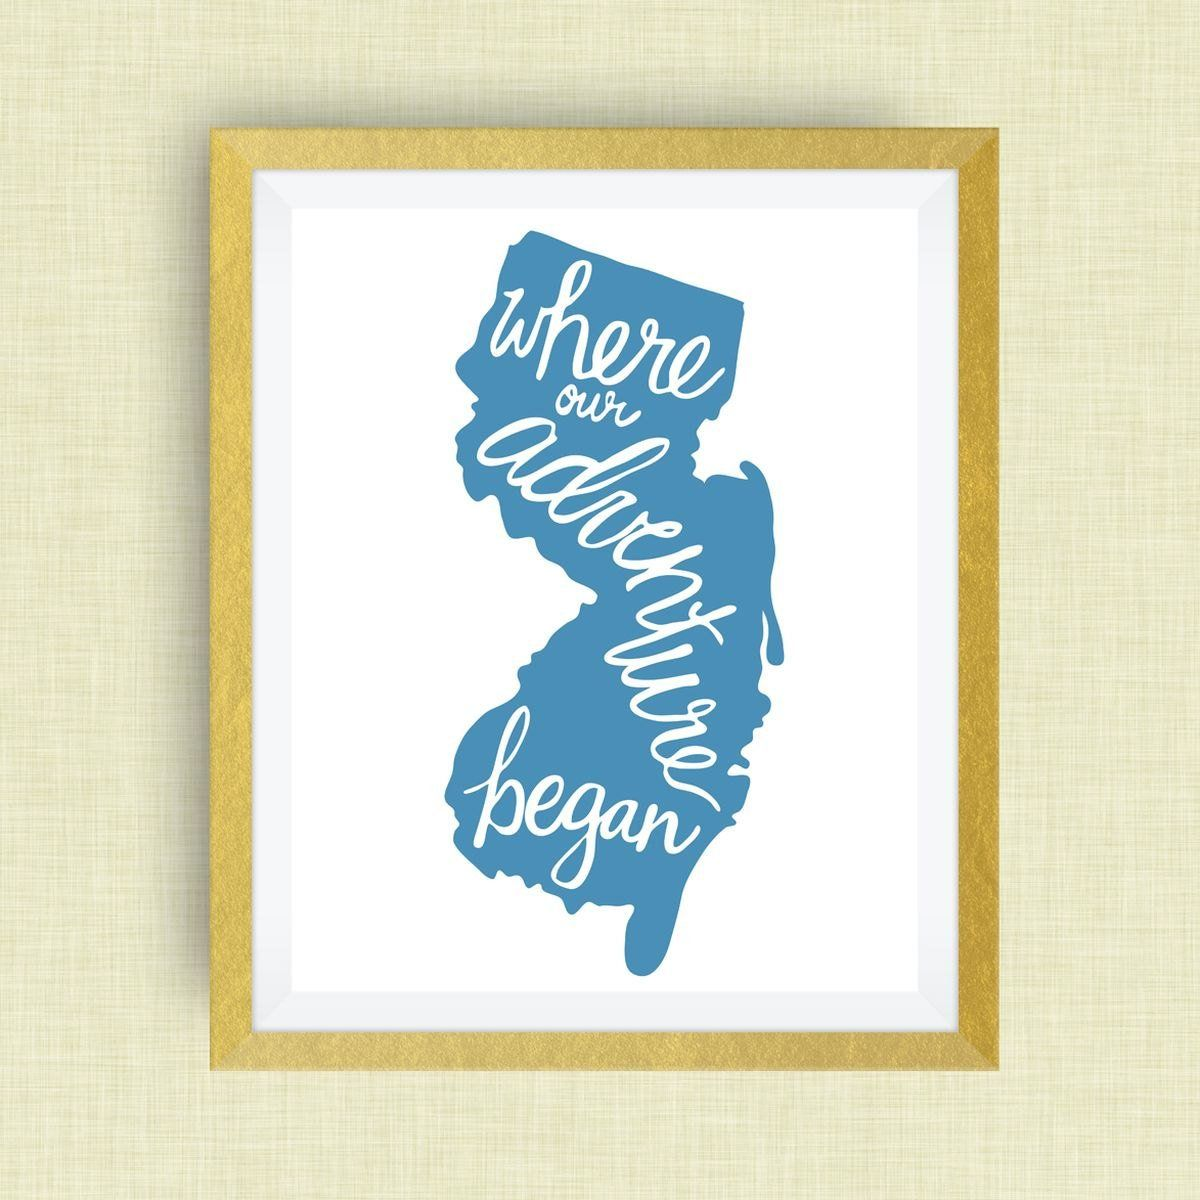 New Jersey Art Print Where Our Adventure Began (TM